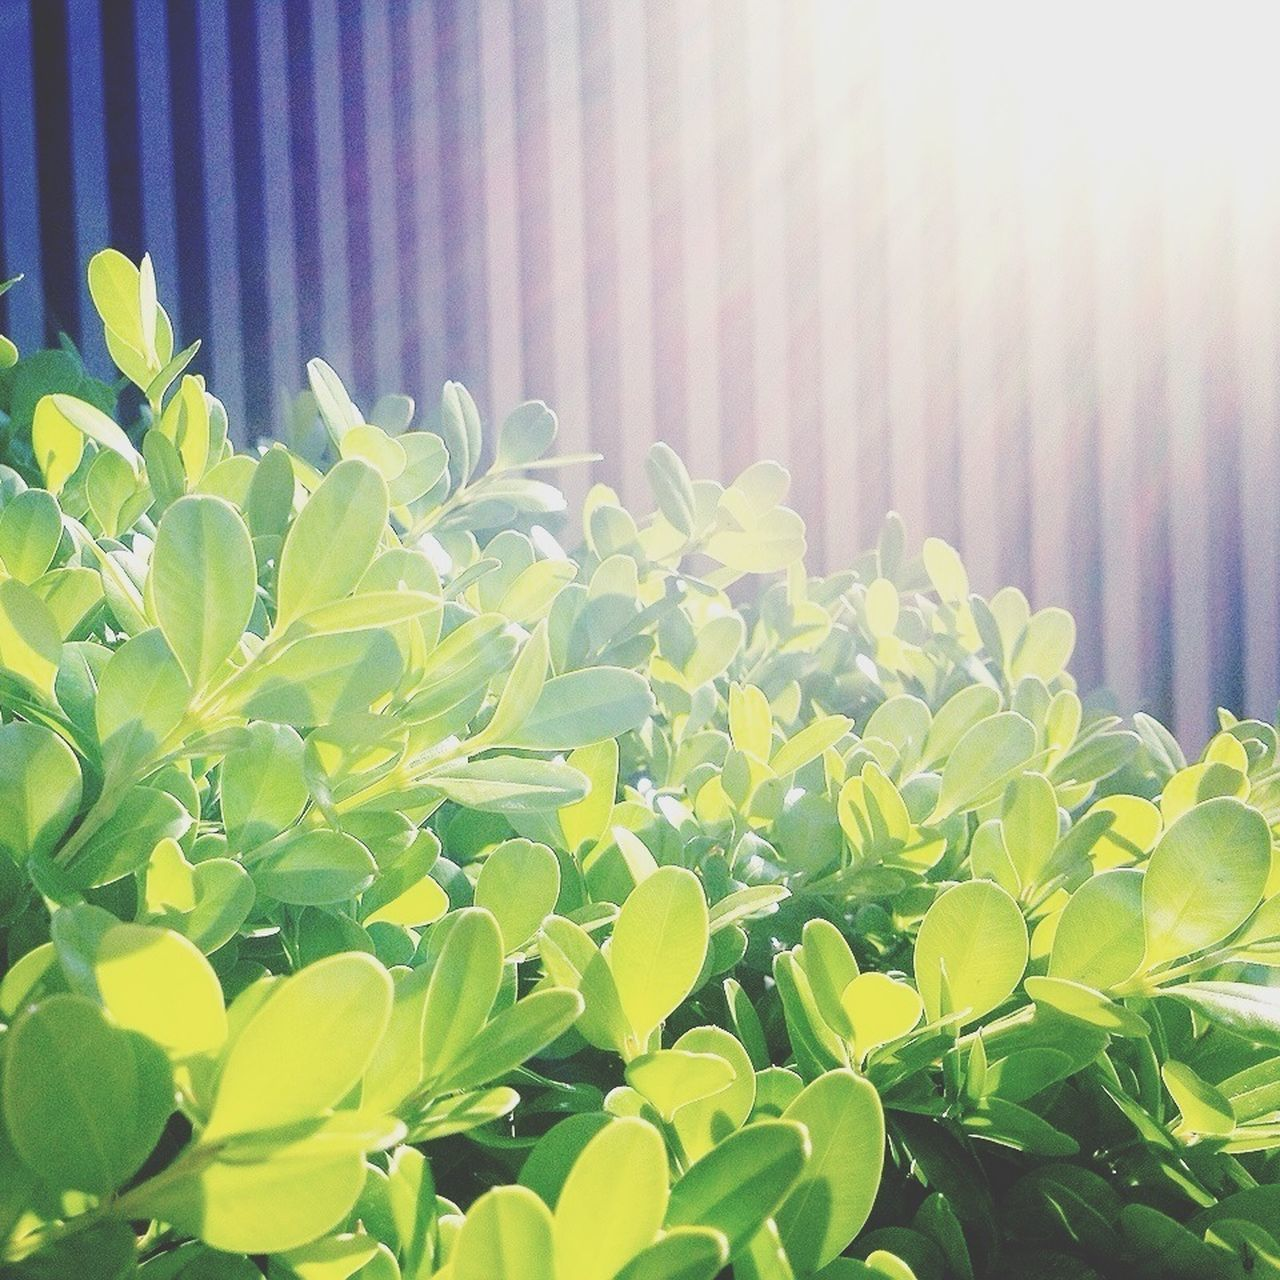 leaf, growth, green color, plant, sunlight, no people, outdoors, day, nature, freshness, close-up, beauty in nature, fragility